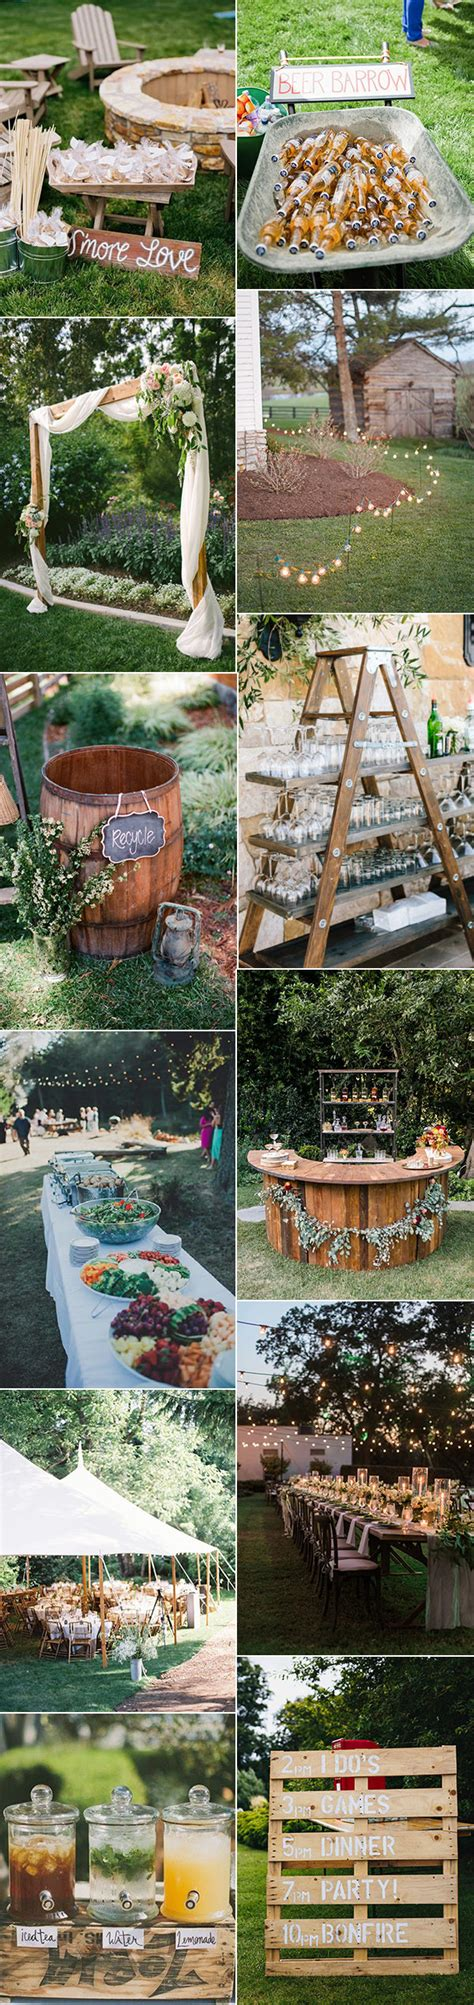 country backyard wedding ideas 20 great backyard wedding ideas that inspire oh best day